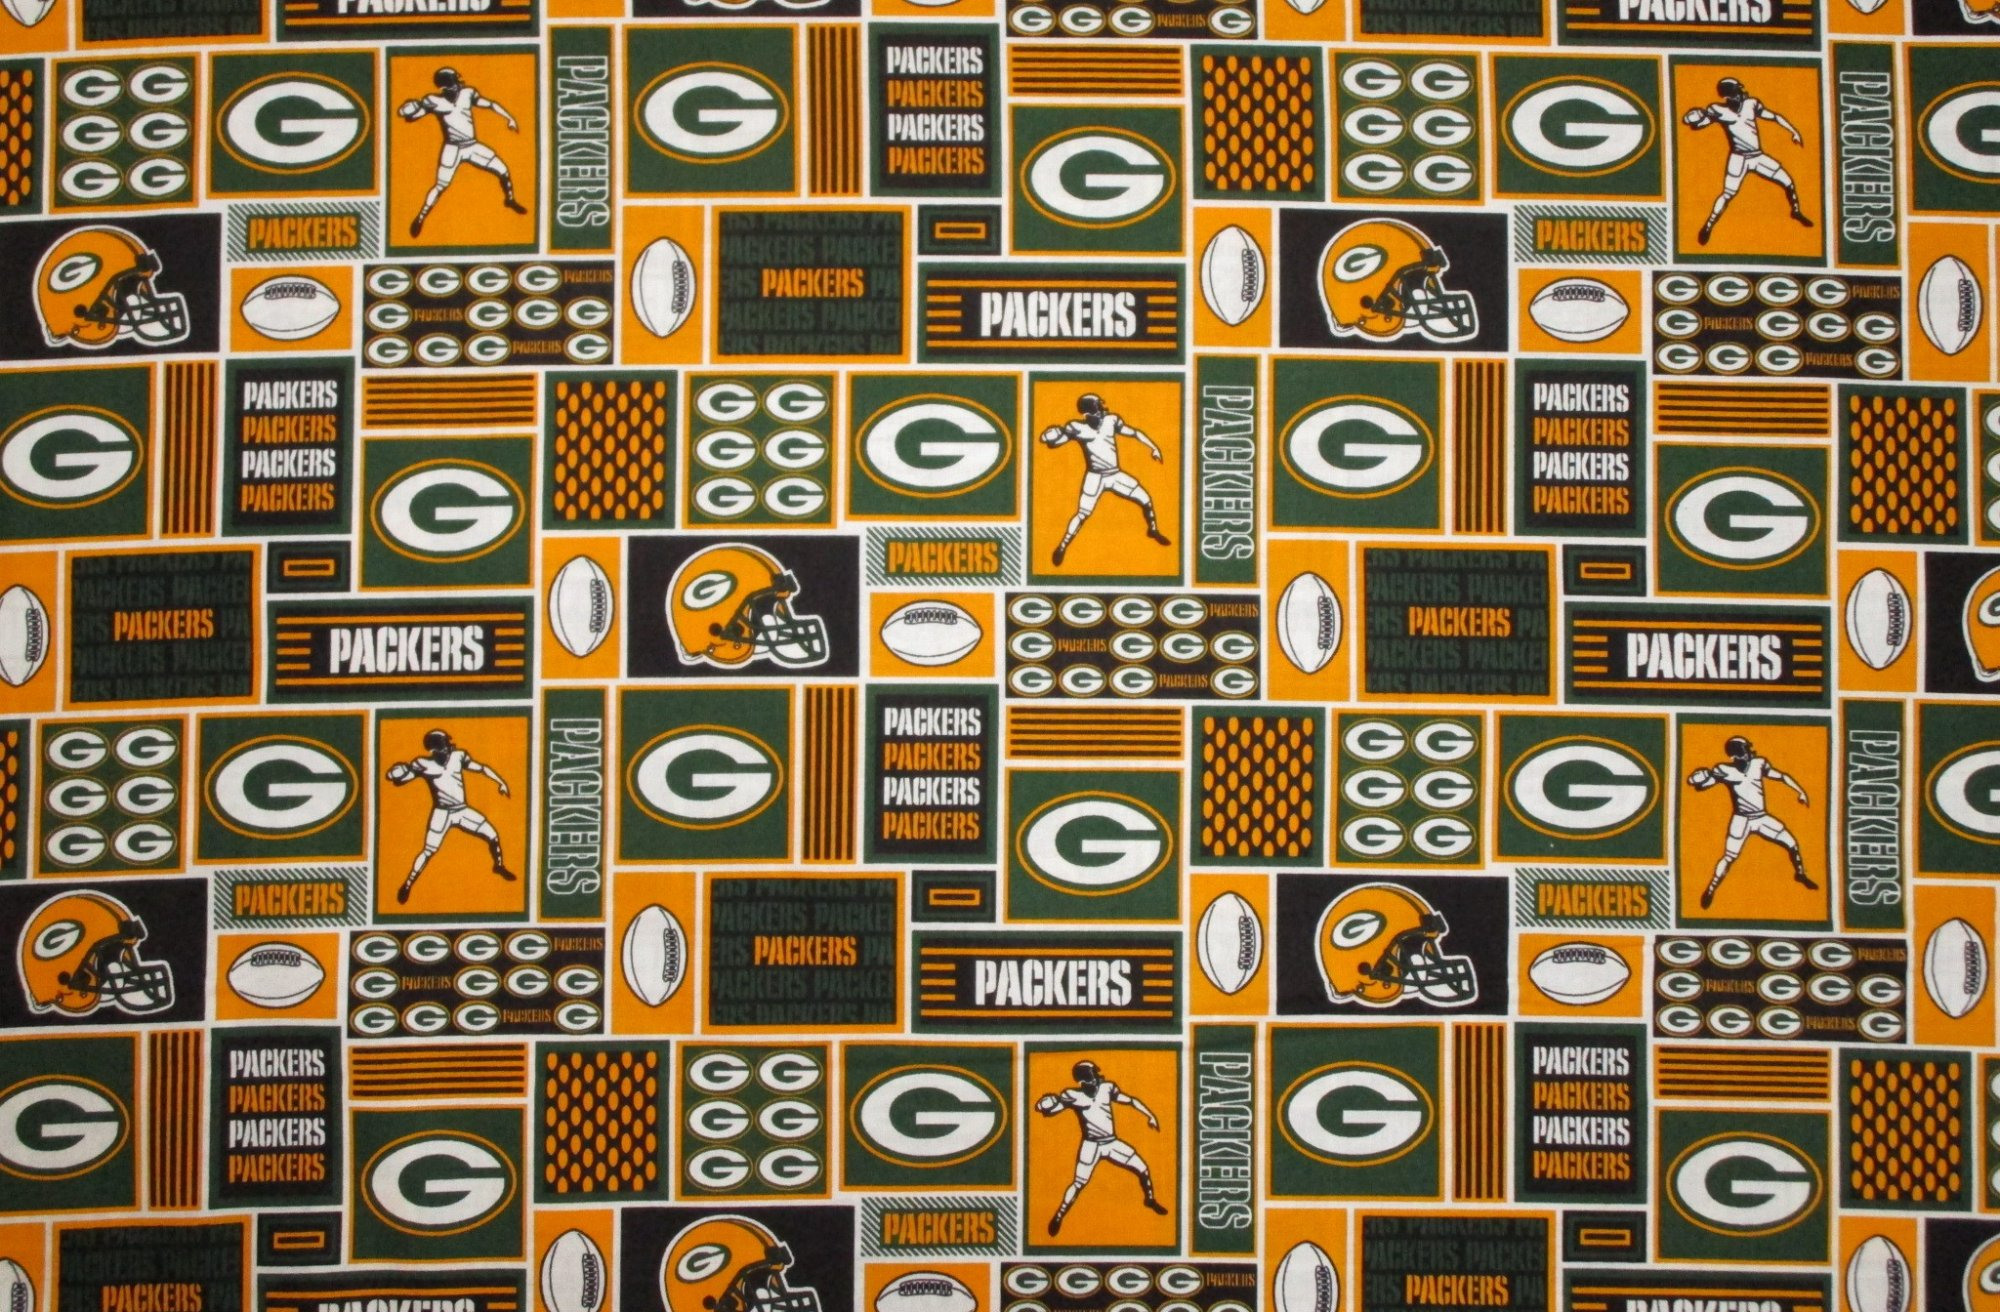 NFL Green Bay Packers 14796 Blocks